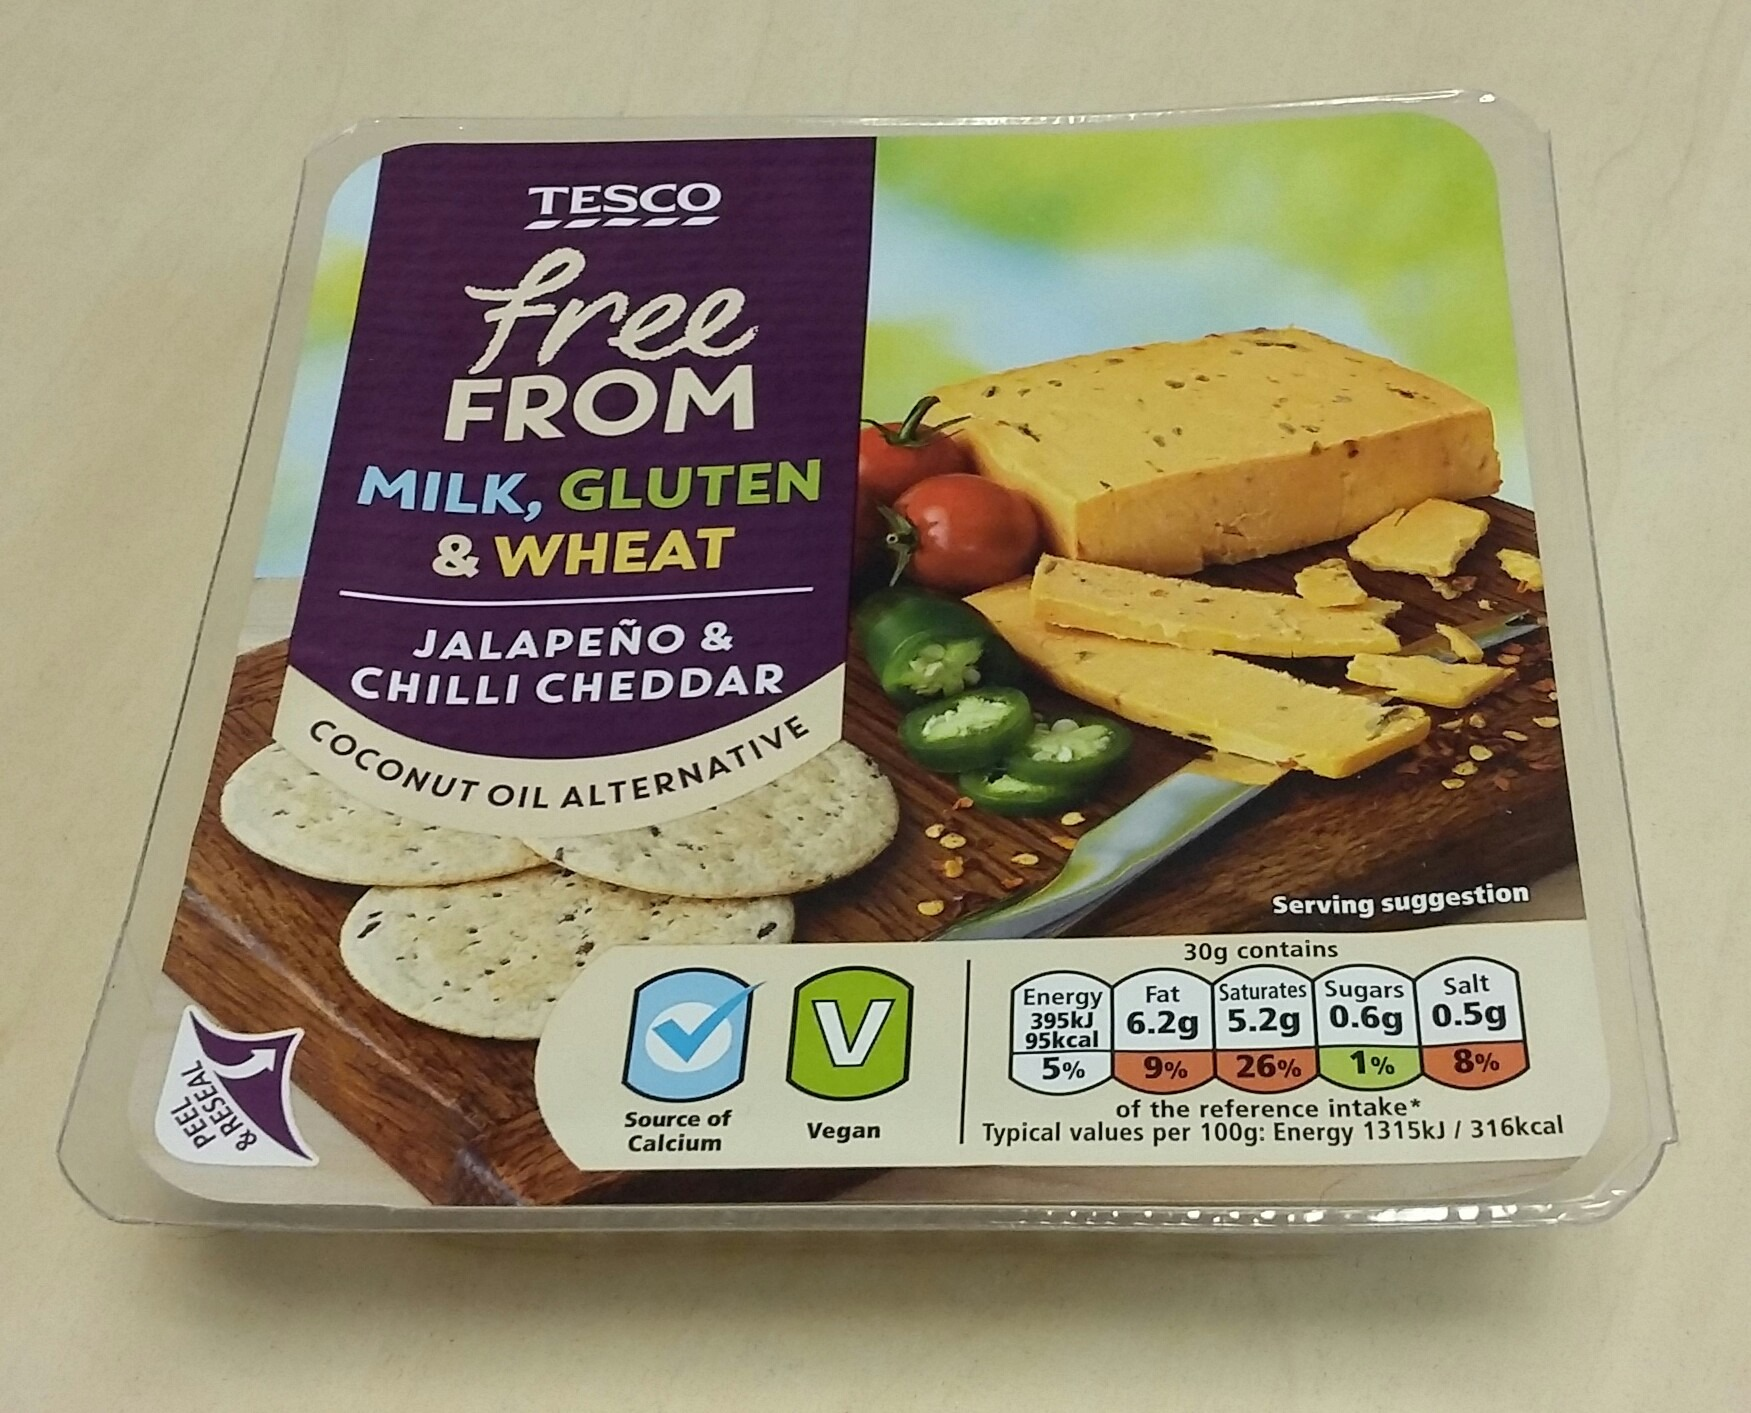 Tesco Free From Jalapeño and Chilli Cheddar